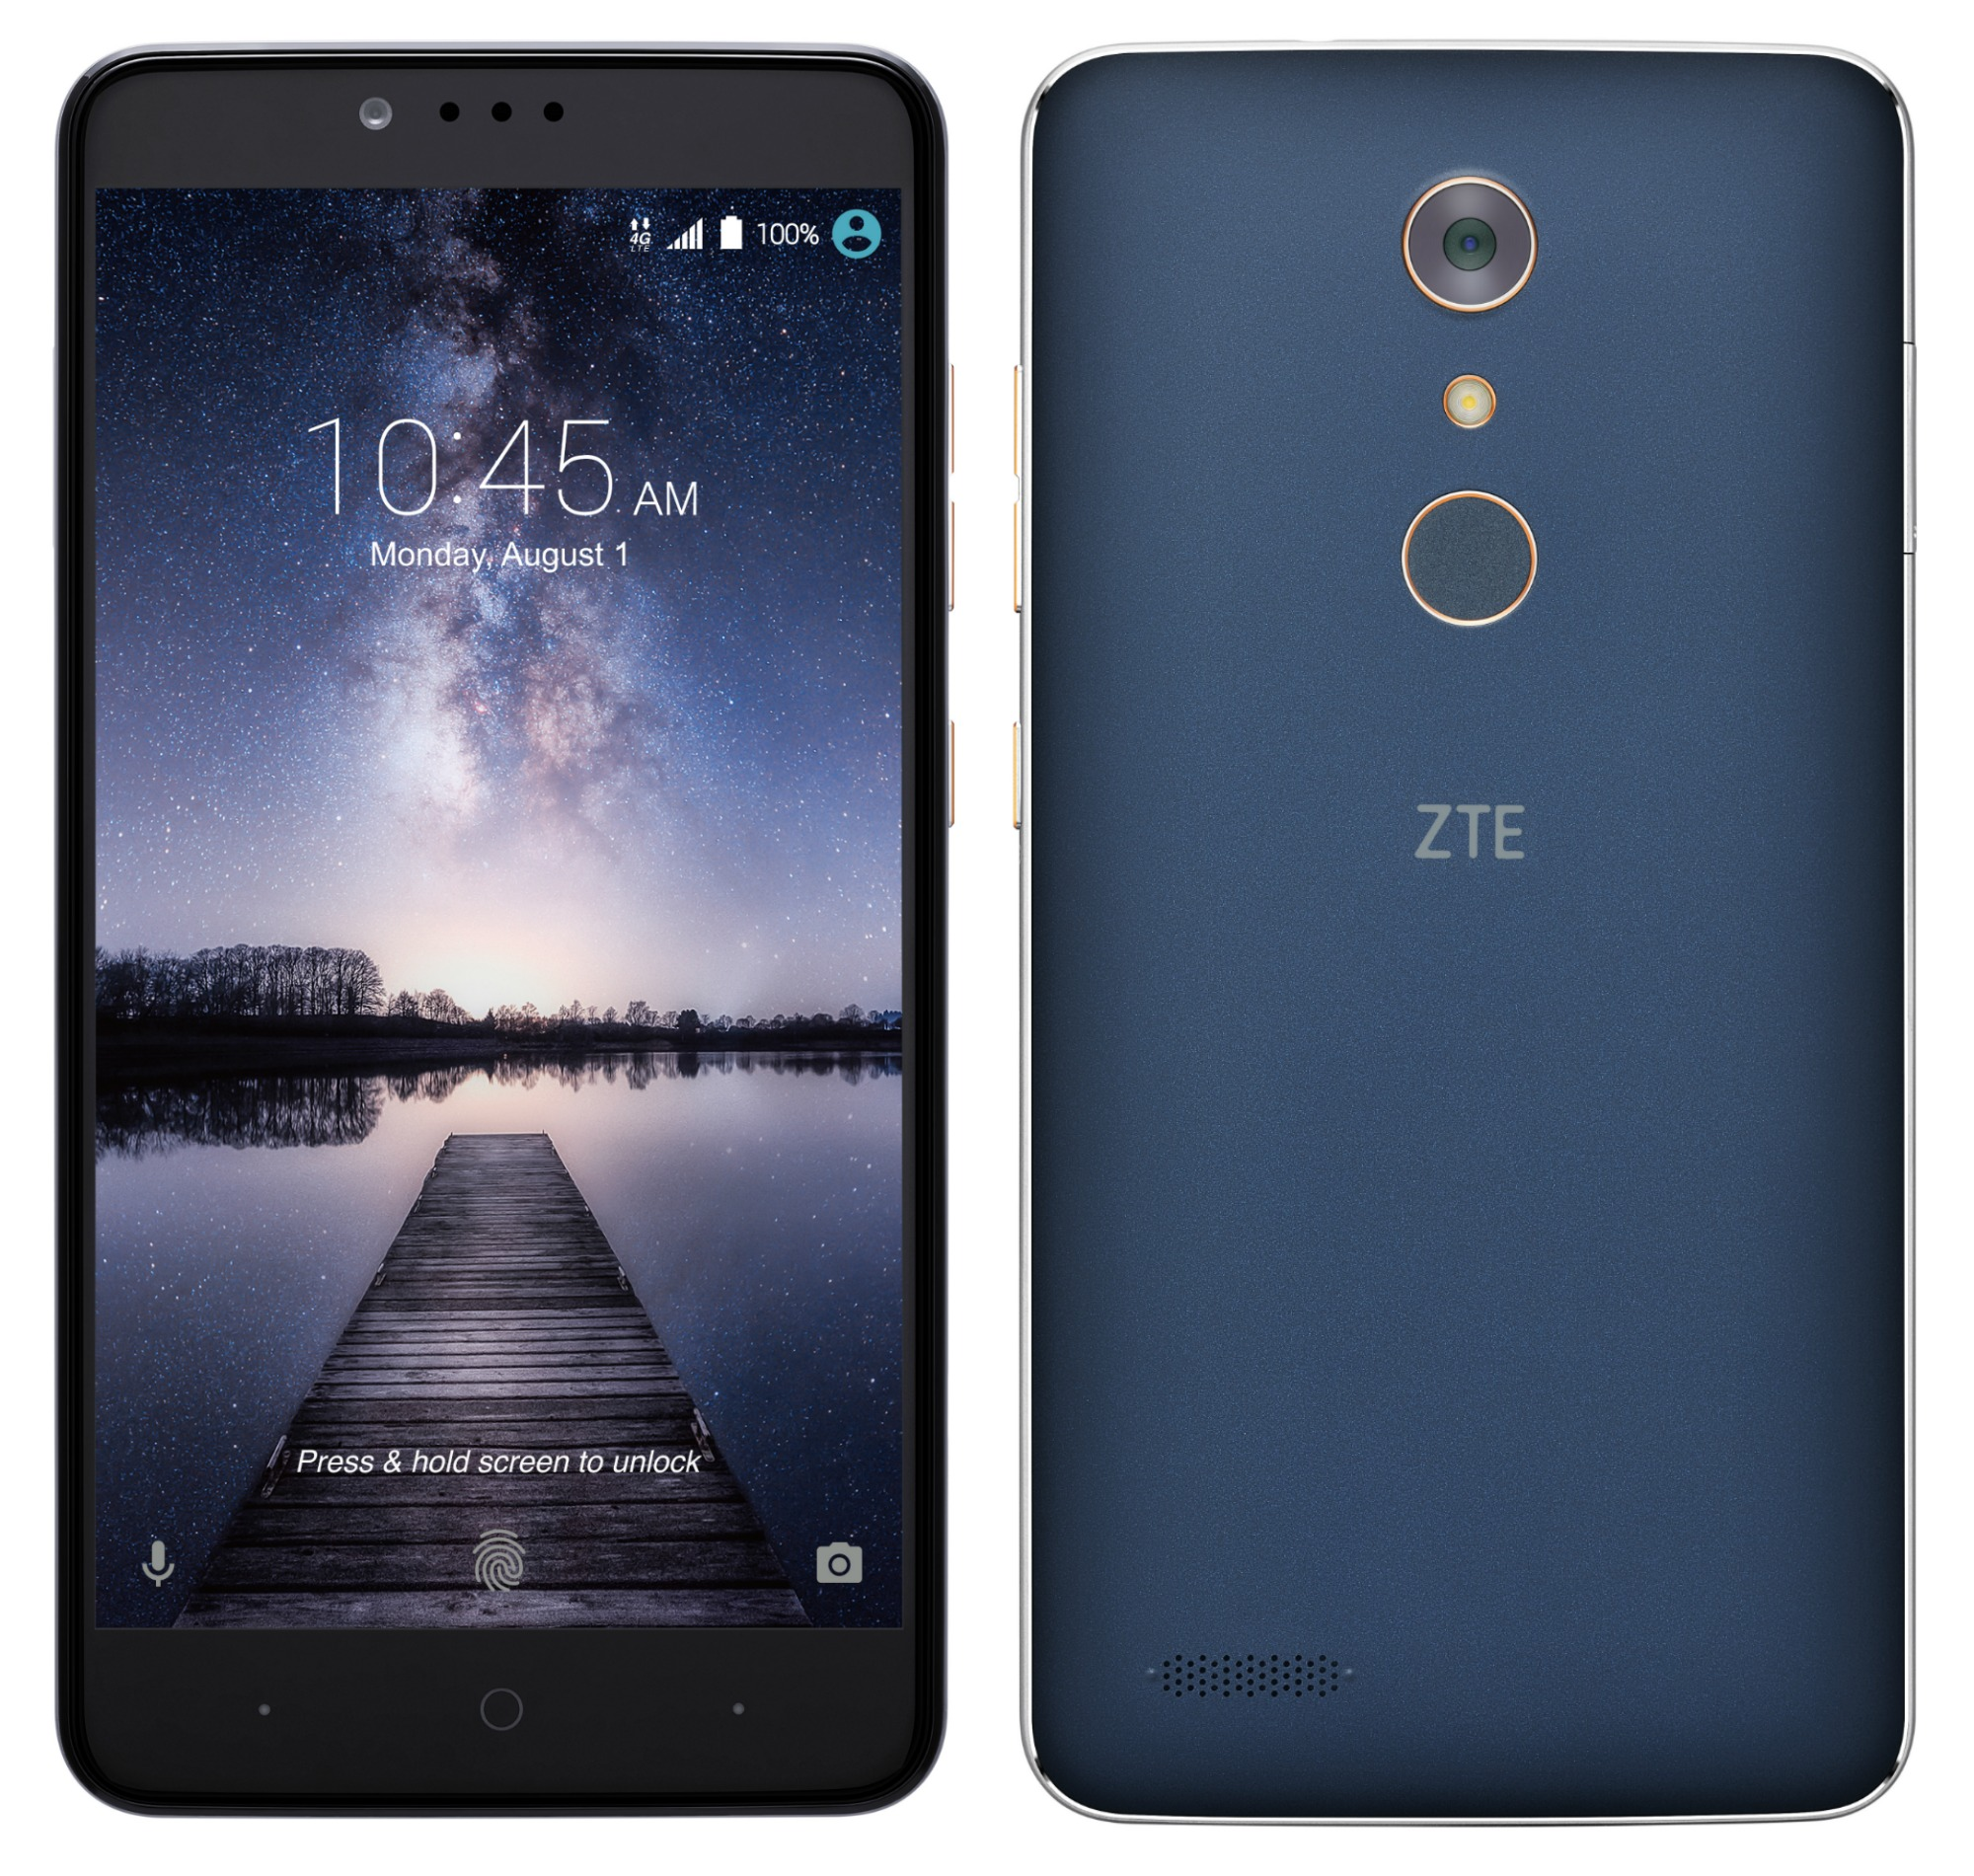 zte zmax pro android phone man within